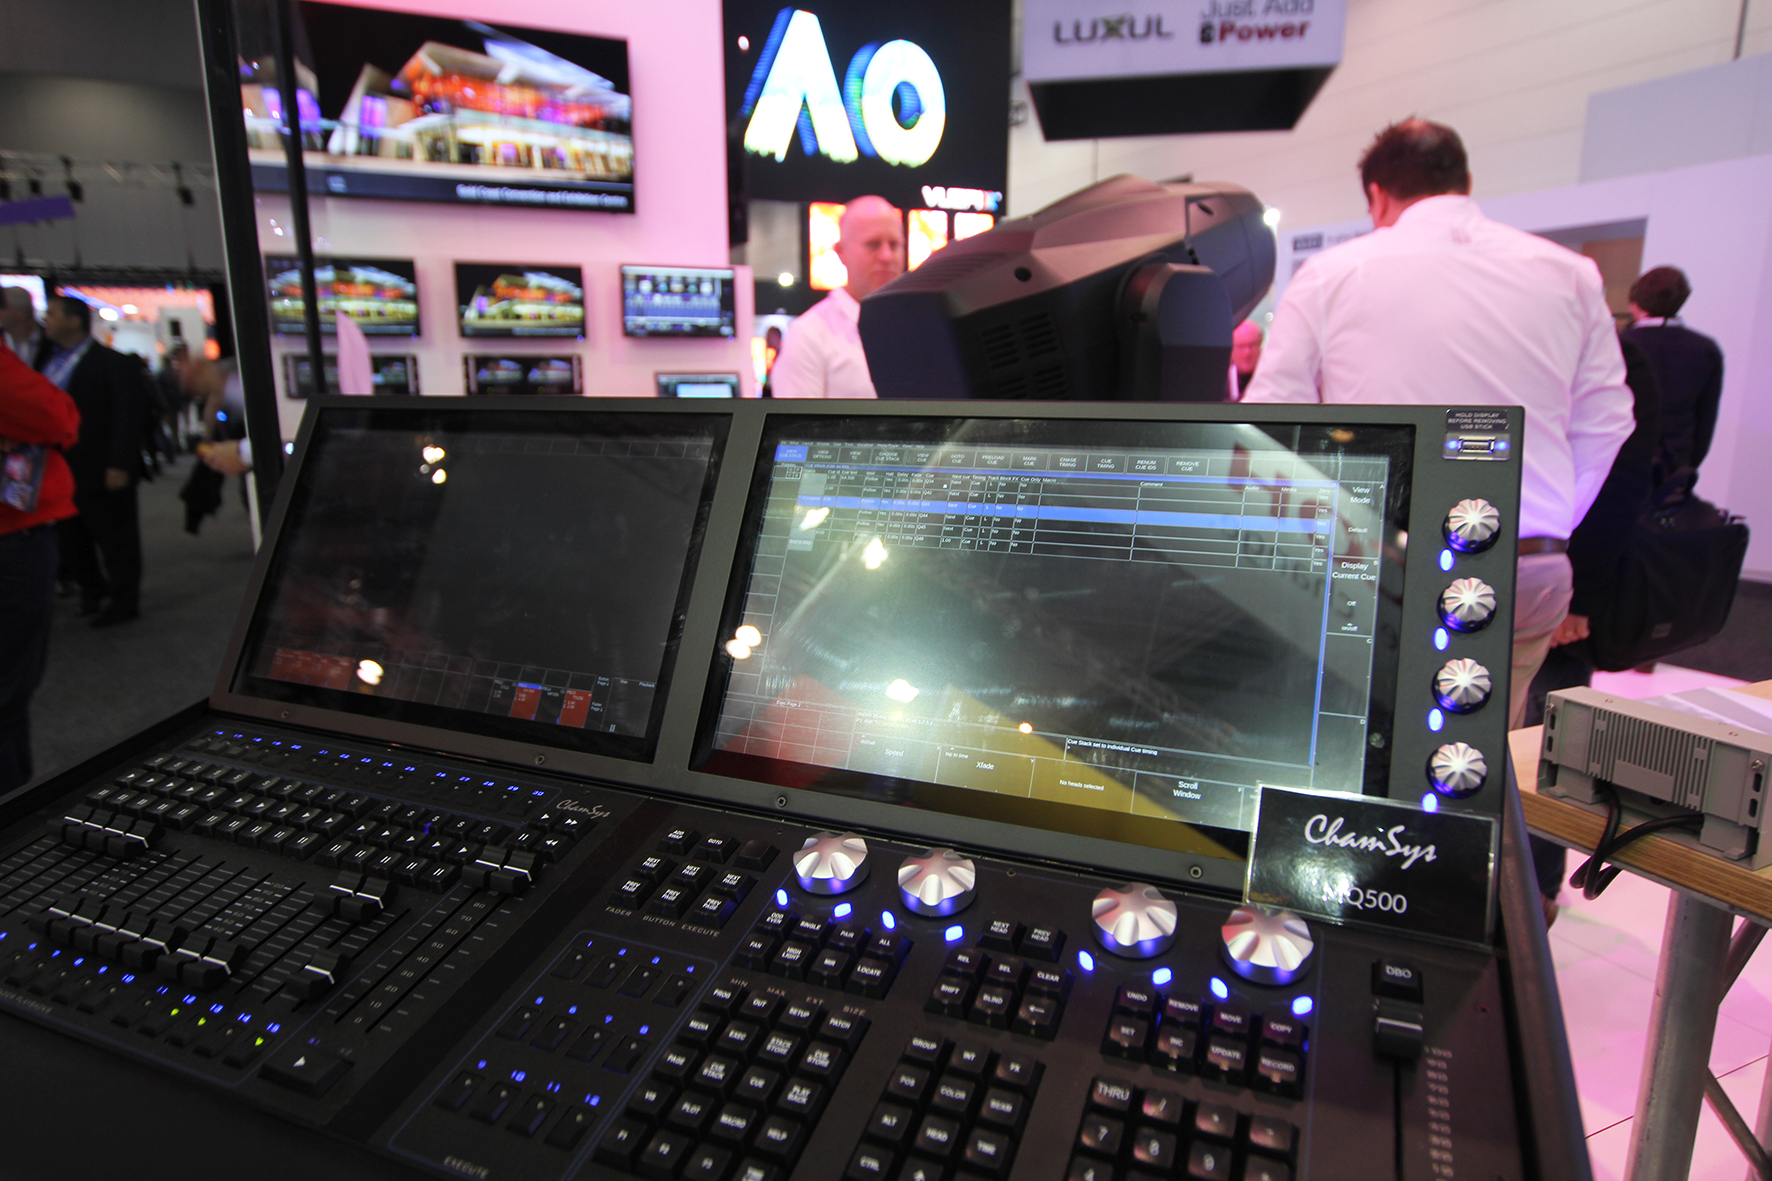 LED Control Desk Chamsys MQ500